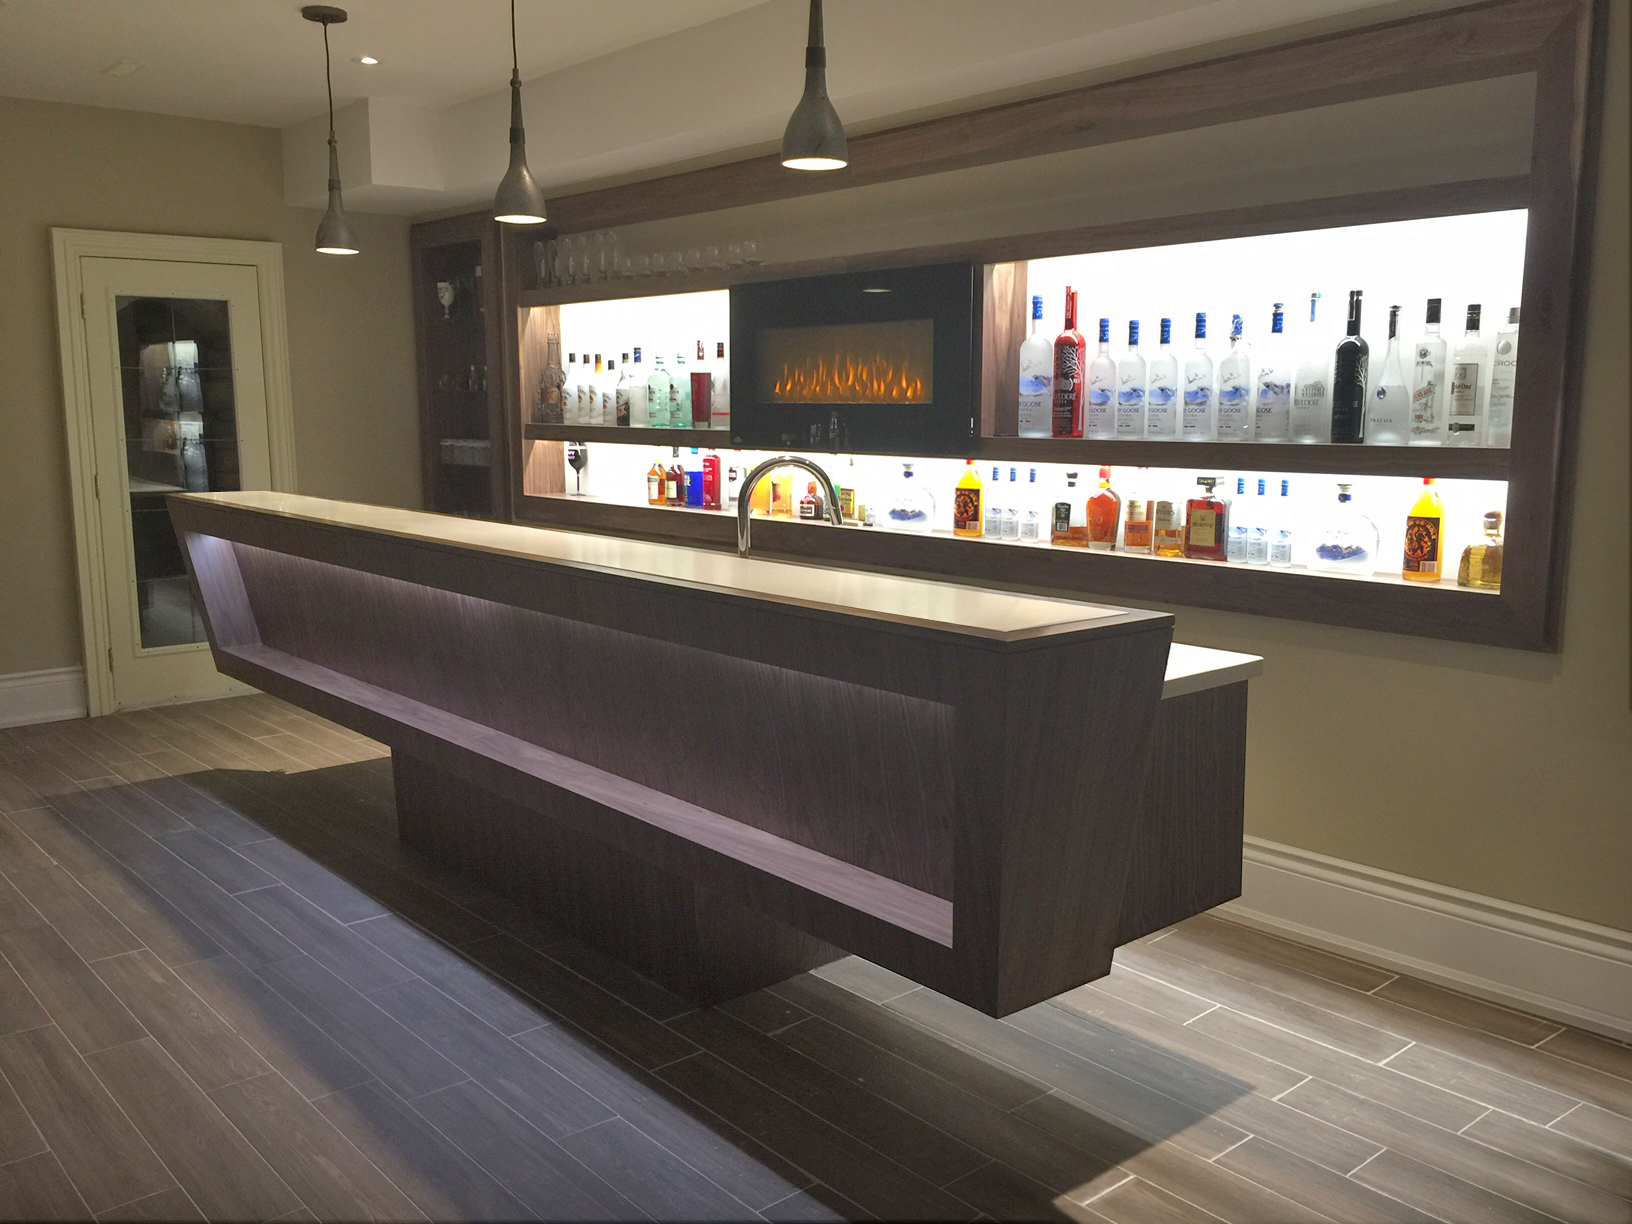 Basement in torontorenovation and finishing basement in toronto - Finished Bar In Basement Renovations In The Gta